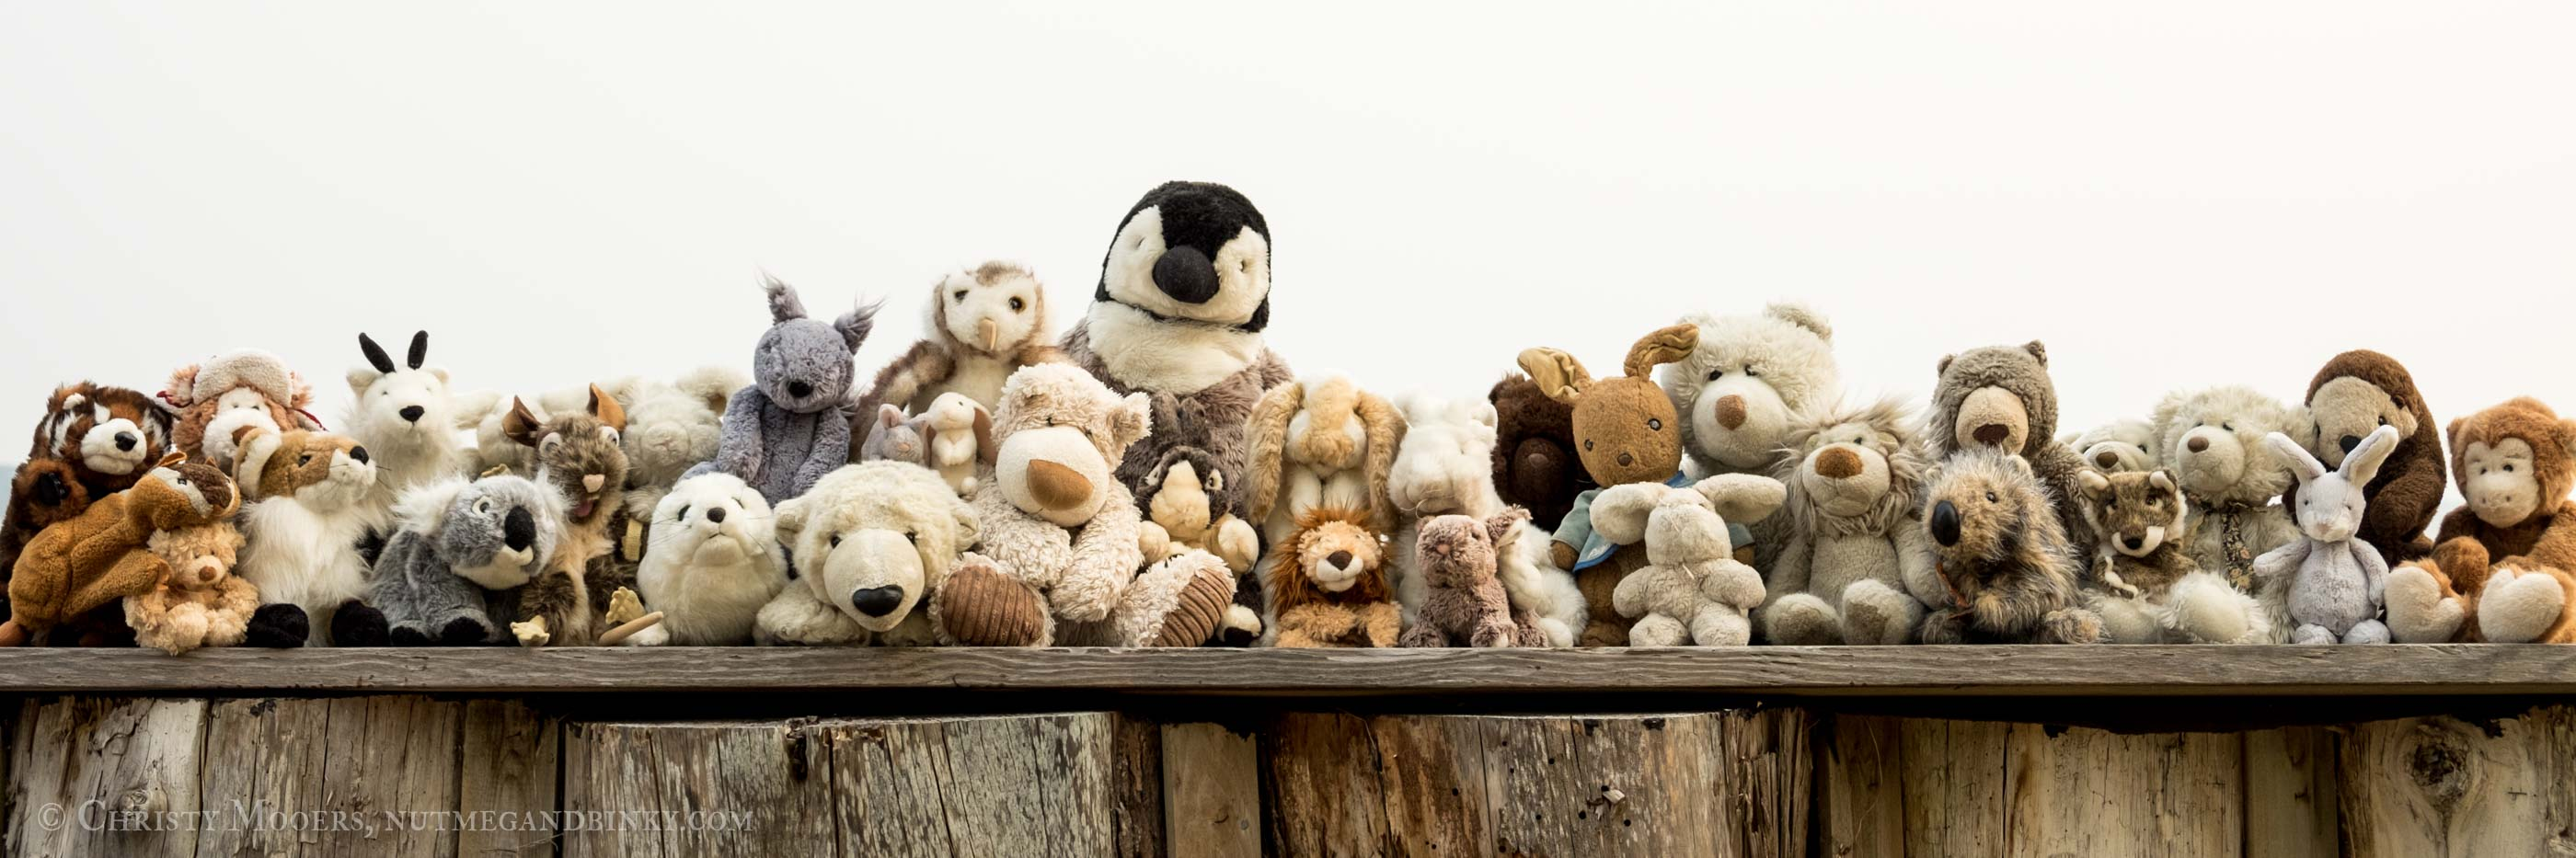 Large groupl of stuffed animals lined up on a wooden bulkhead